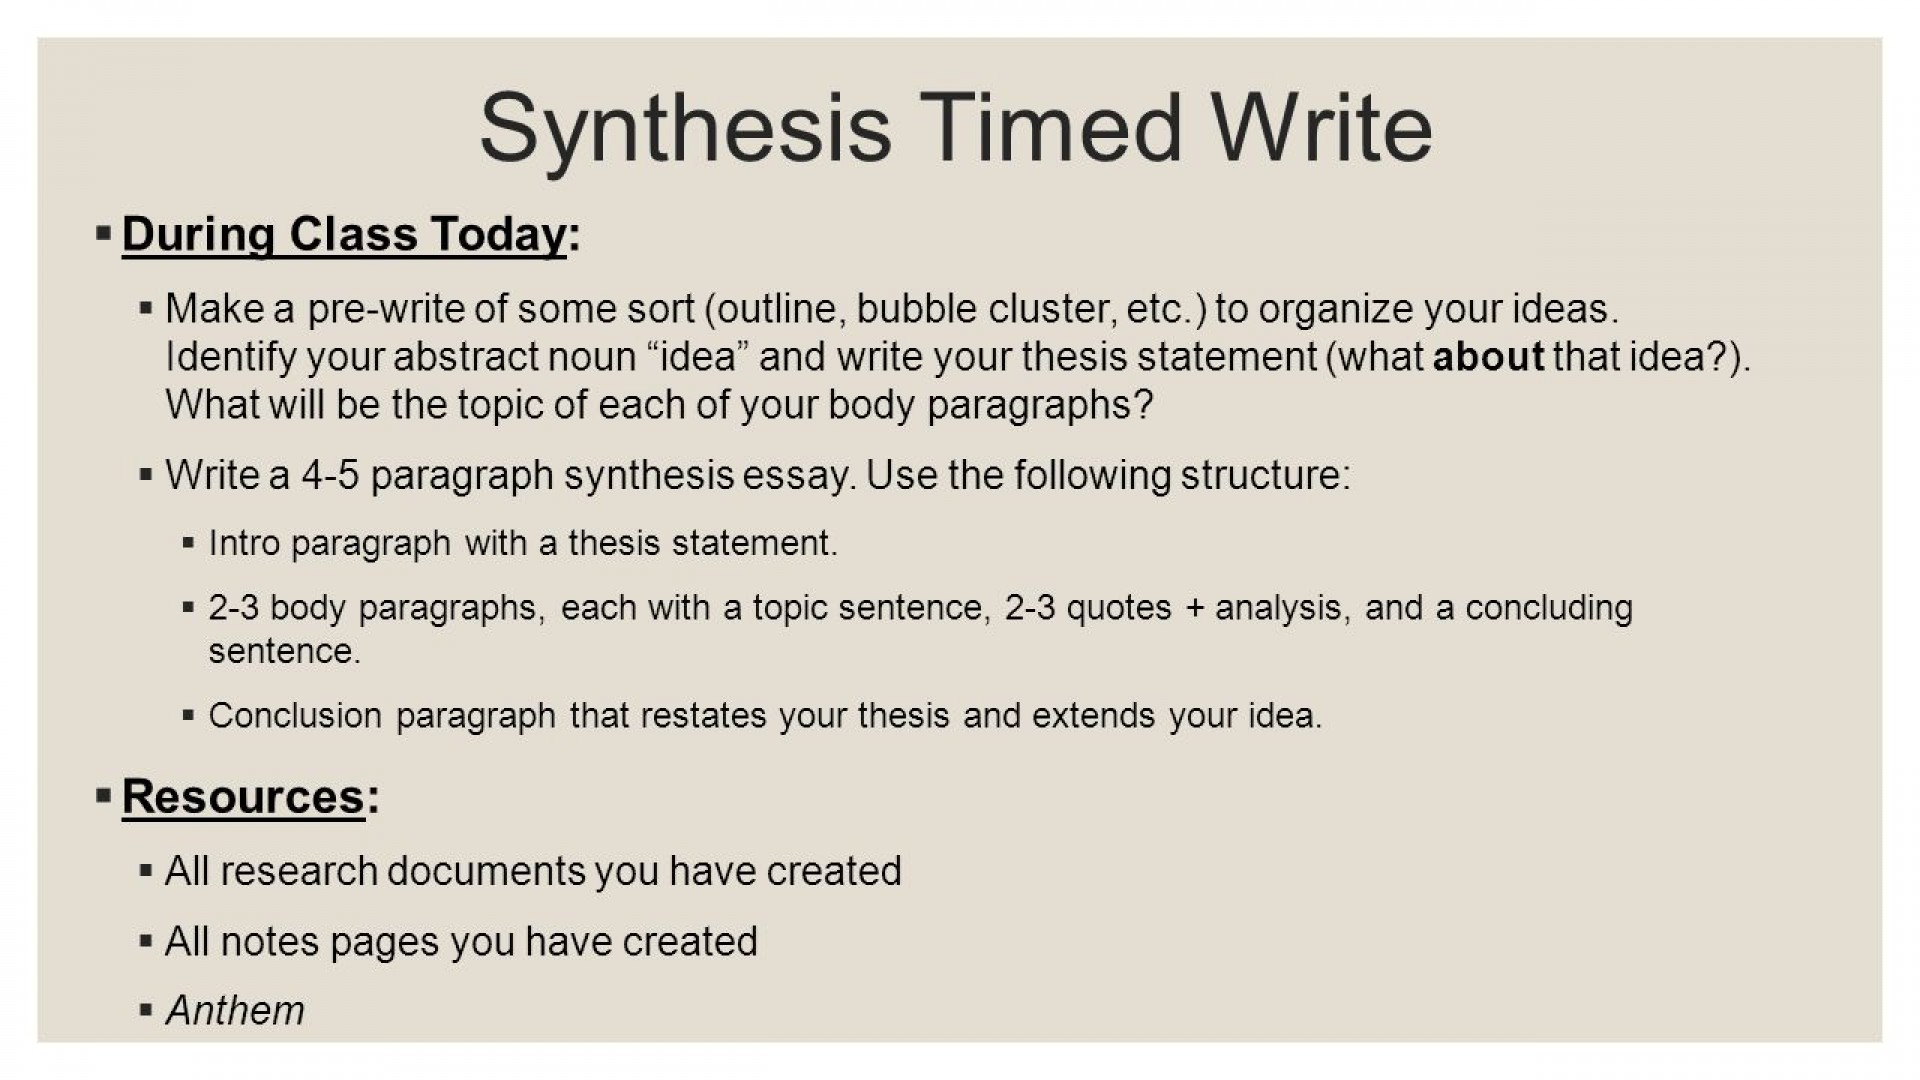 012 Synthesis Essay Outline Anthem Timed Write Day Research How To Sl Do I You For Ap English Lang Conclusion Prompt Thesis Good Introduction Stupendous Sample Example Of Argumentative 1920